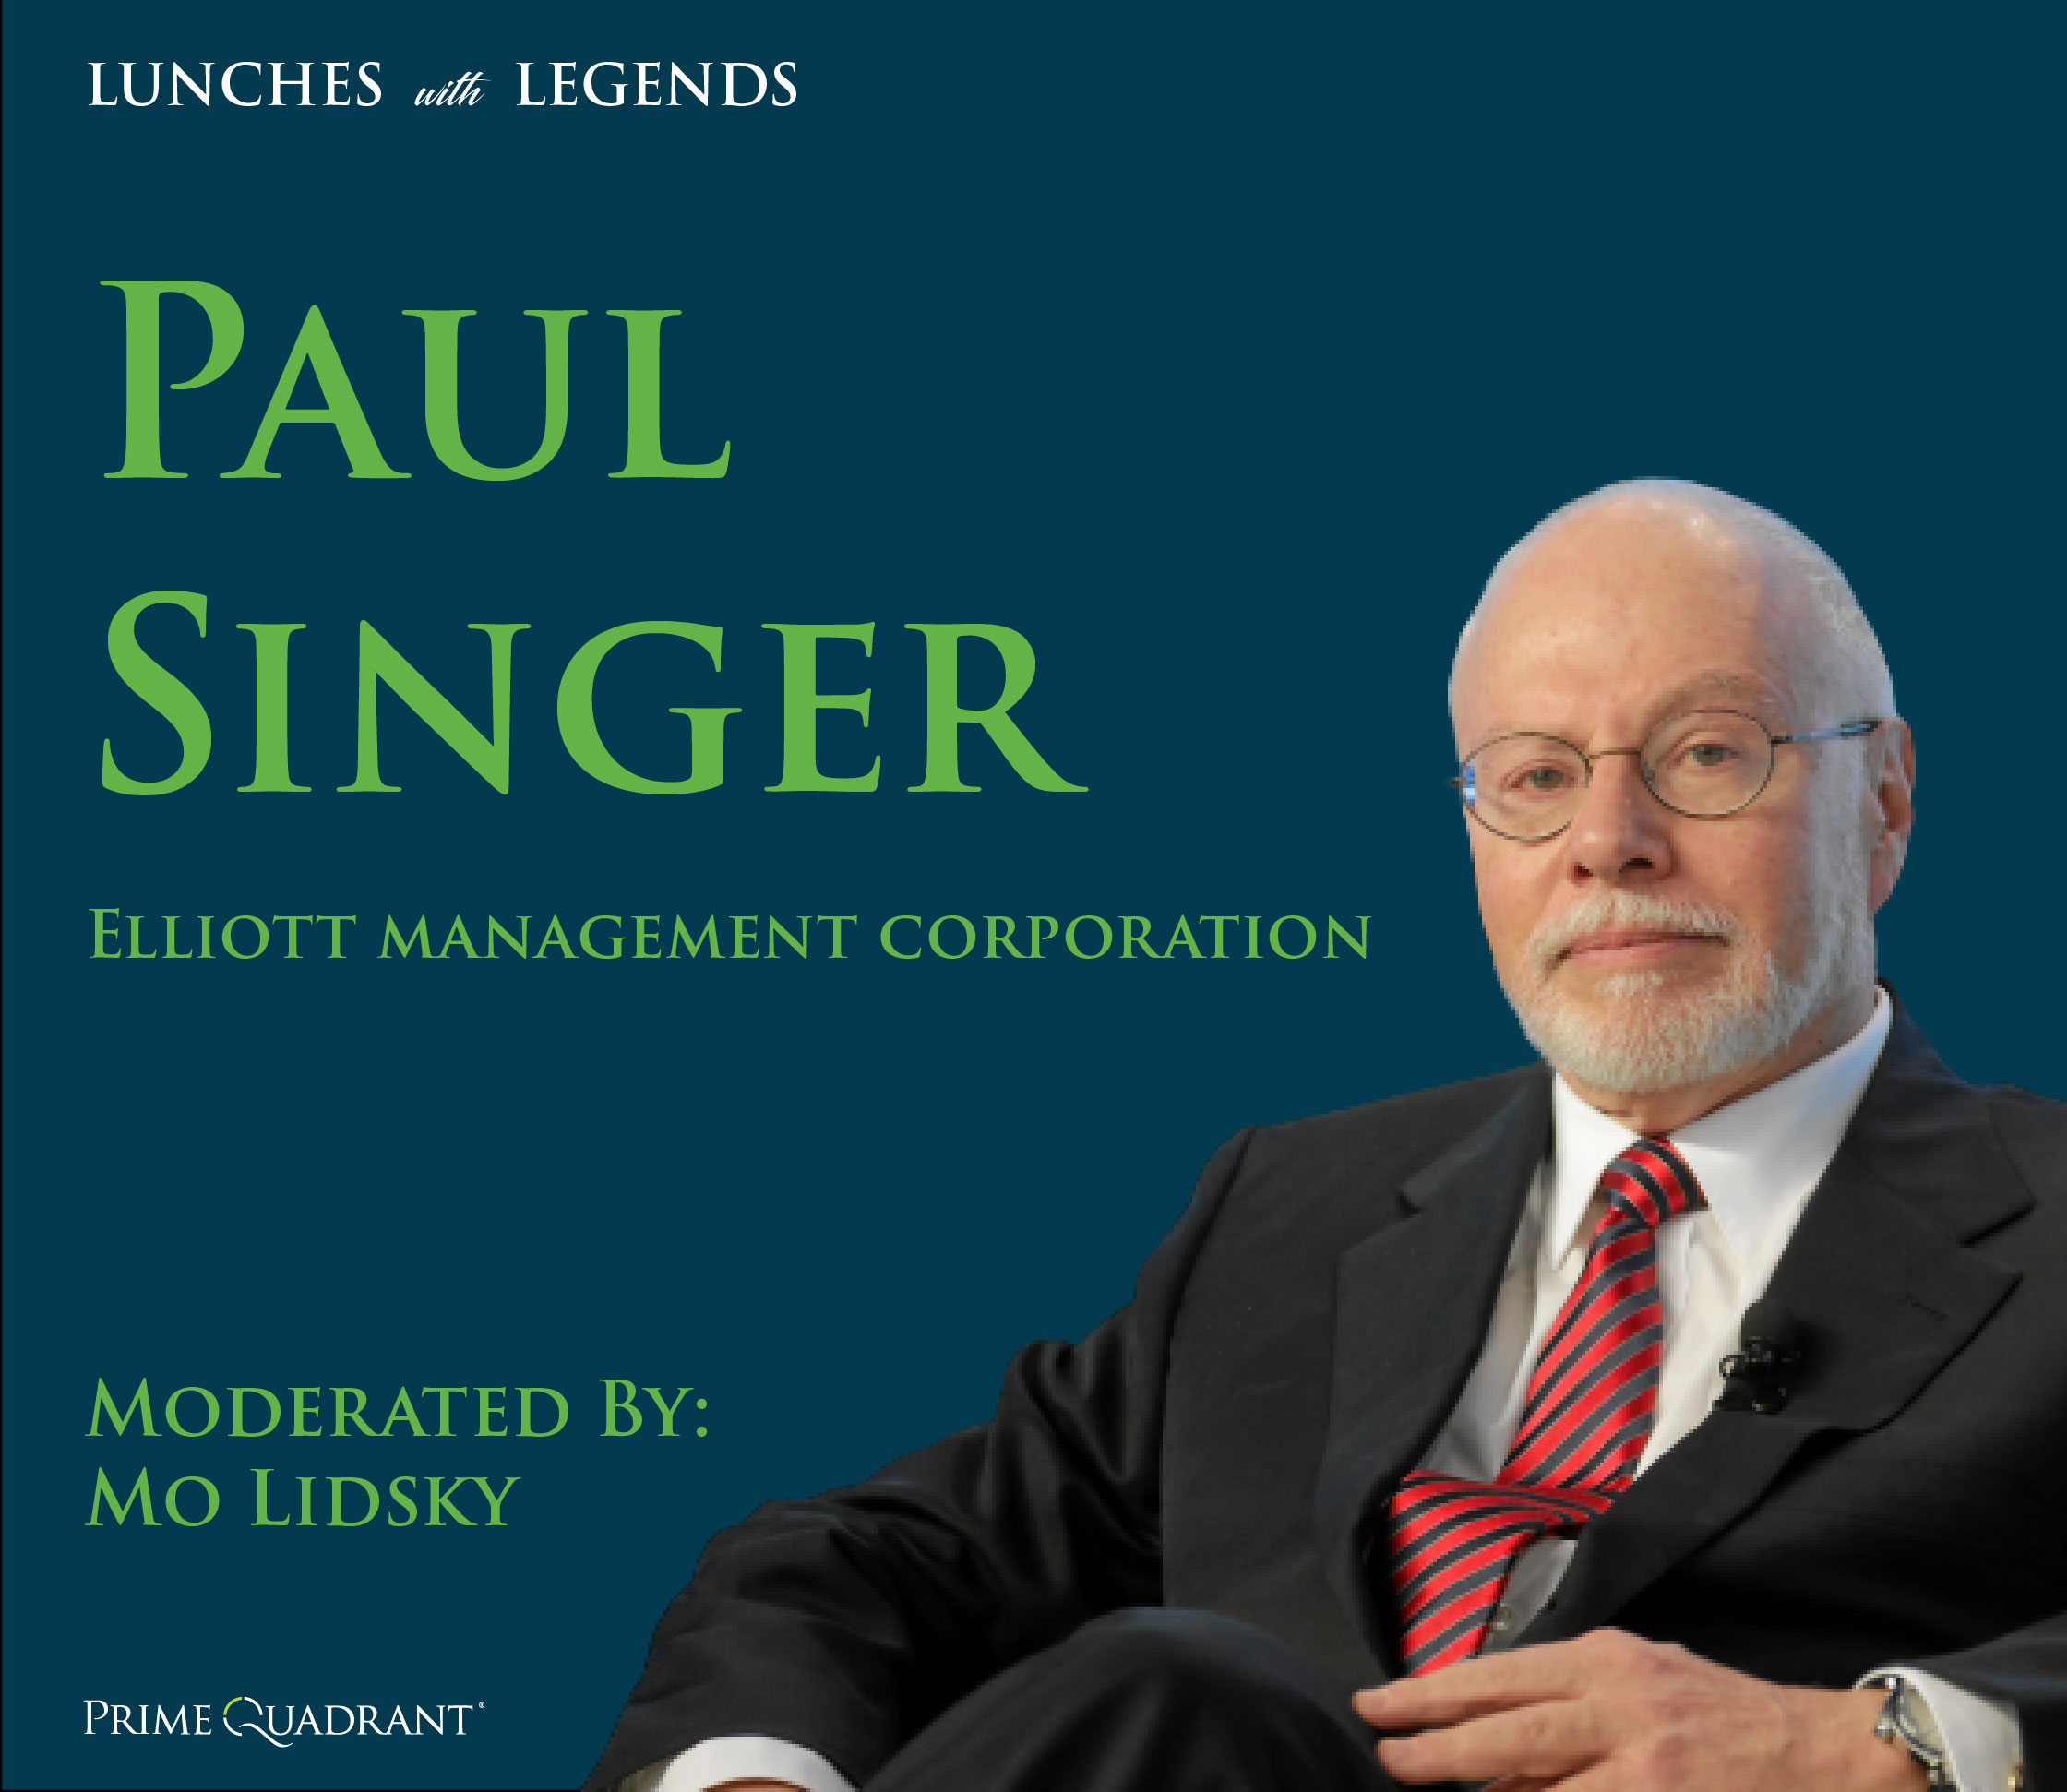 headshot of Paul Singer in a black suit and red tie